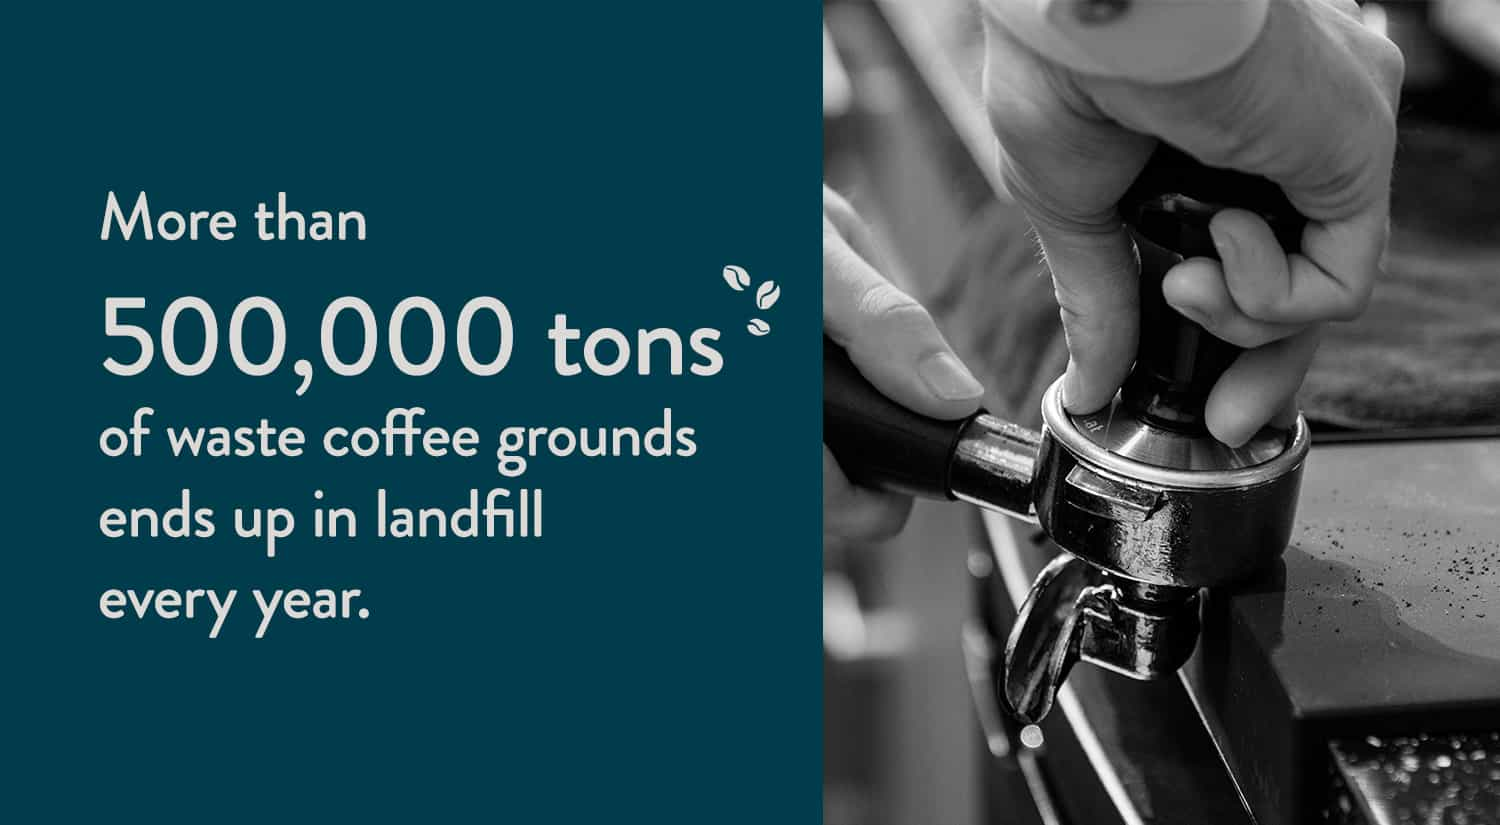 More than 500,000 tons of waste coffee grounds ends up in landfill every year.